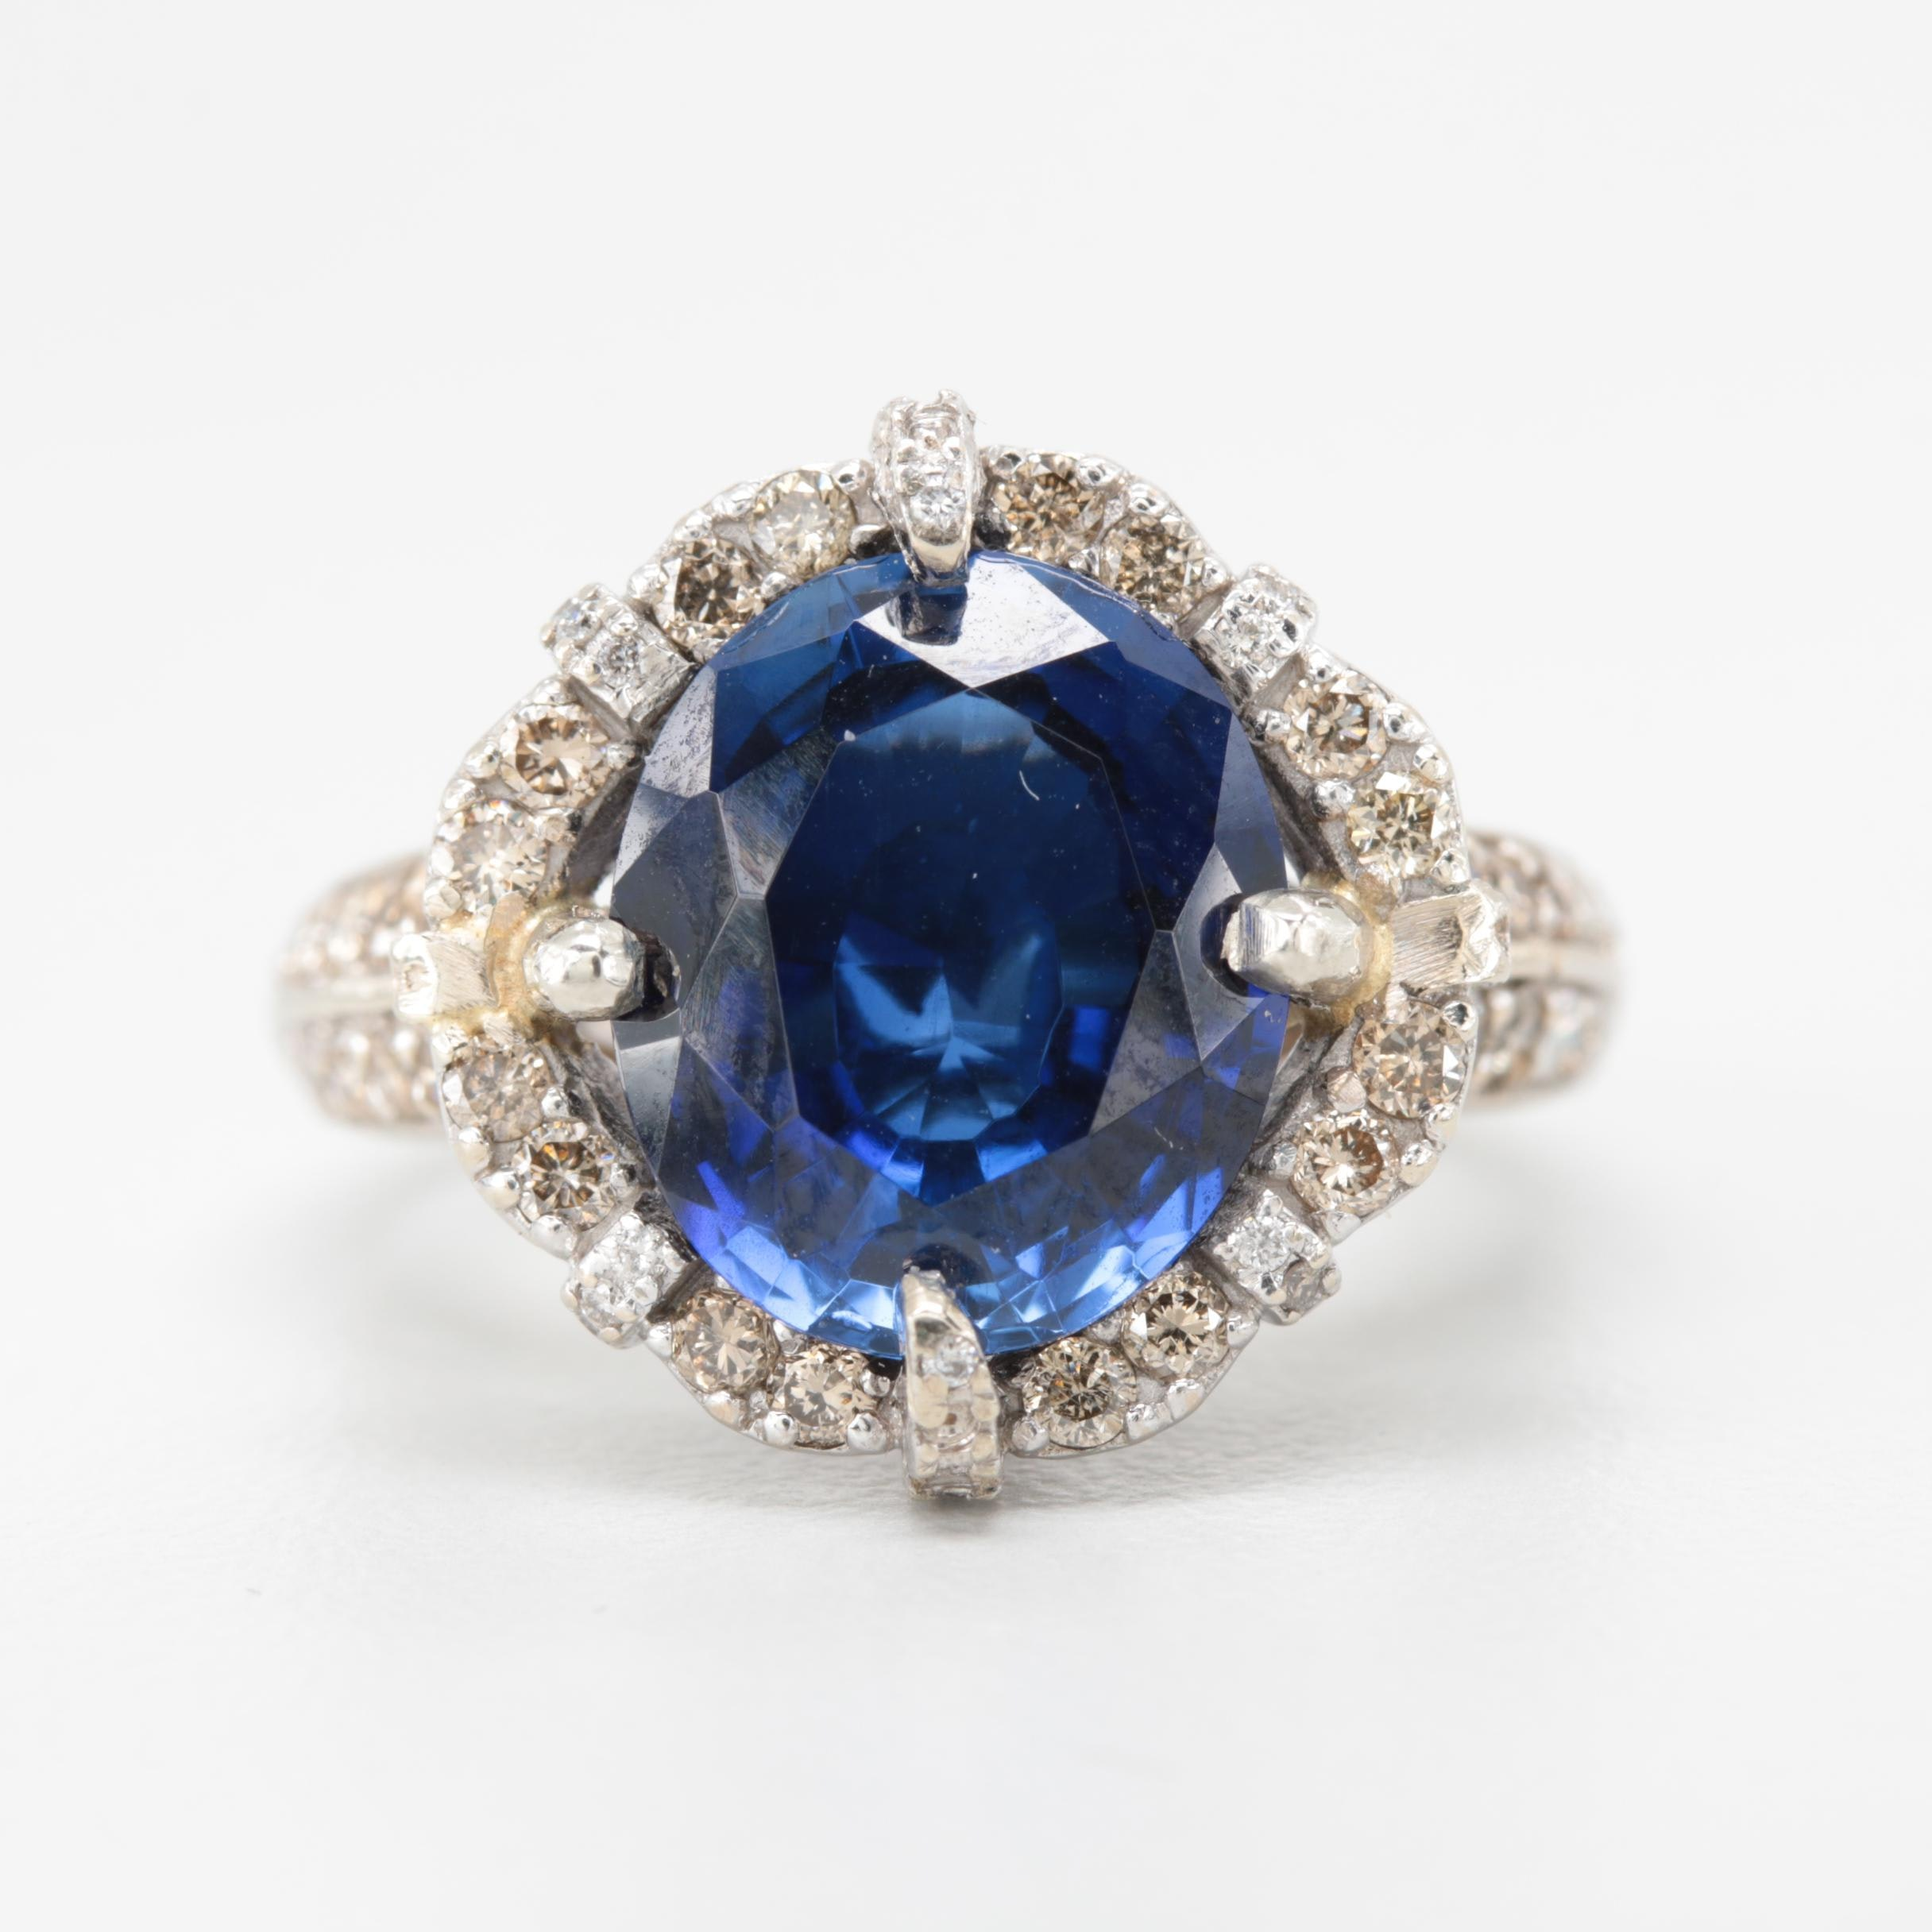 LeVian Semi-Mount 14K White Gold Synthetic Sapphire and Diamond Ring